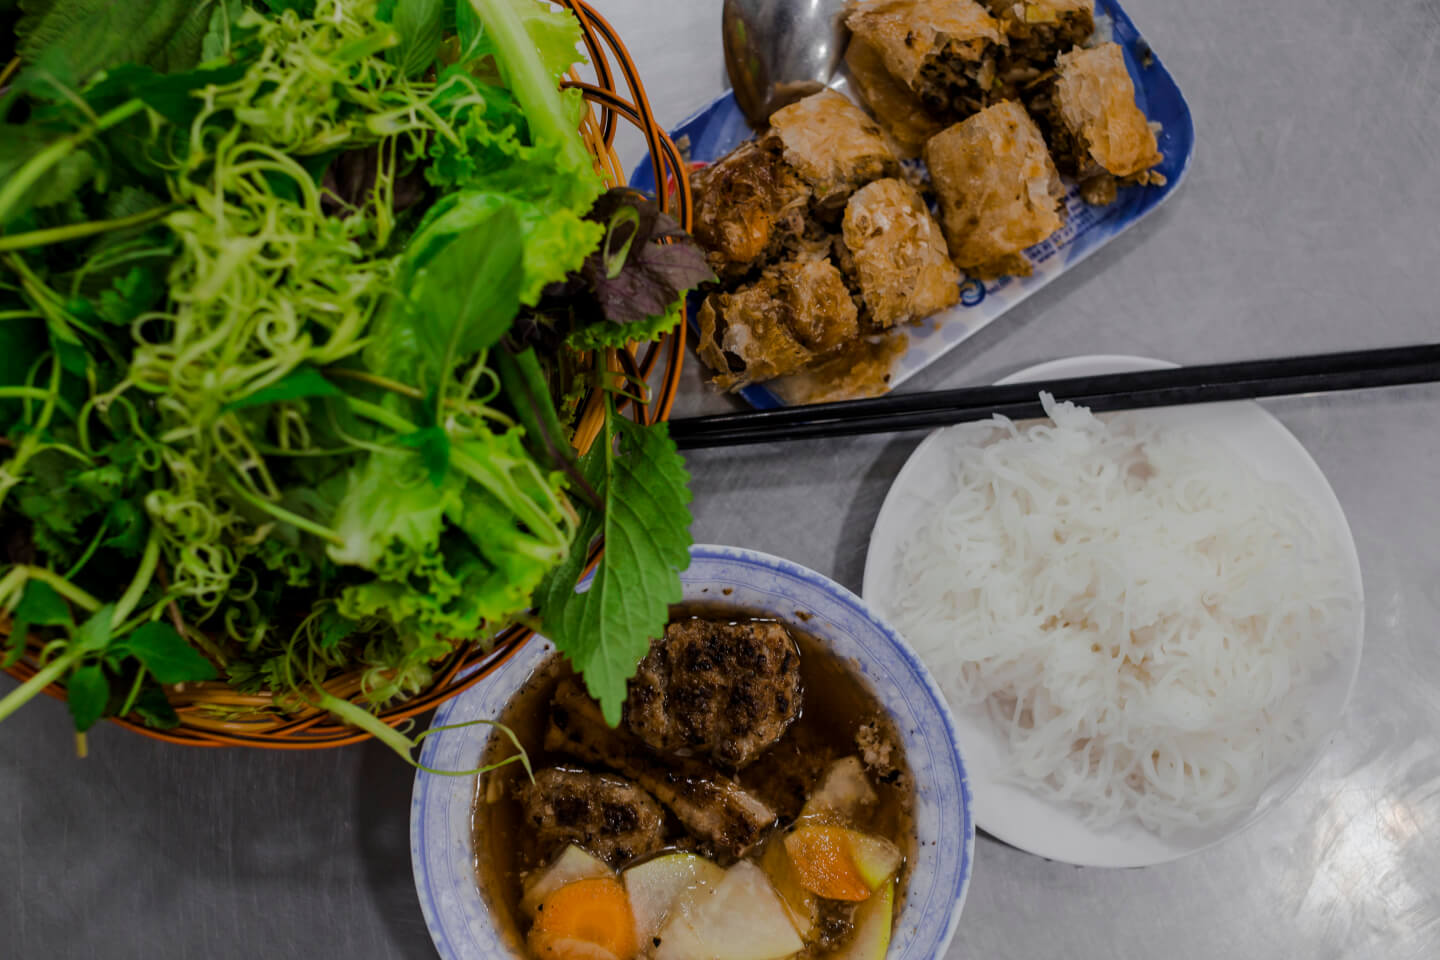 Top 10 Vietnamese Dishes You Should Try - The Christina's Blog